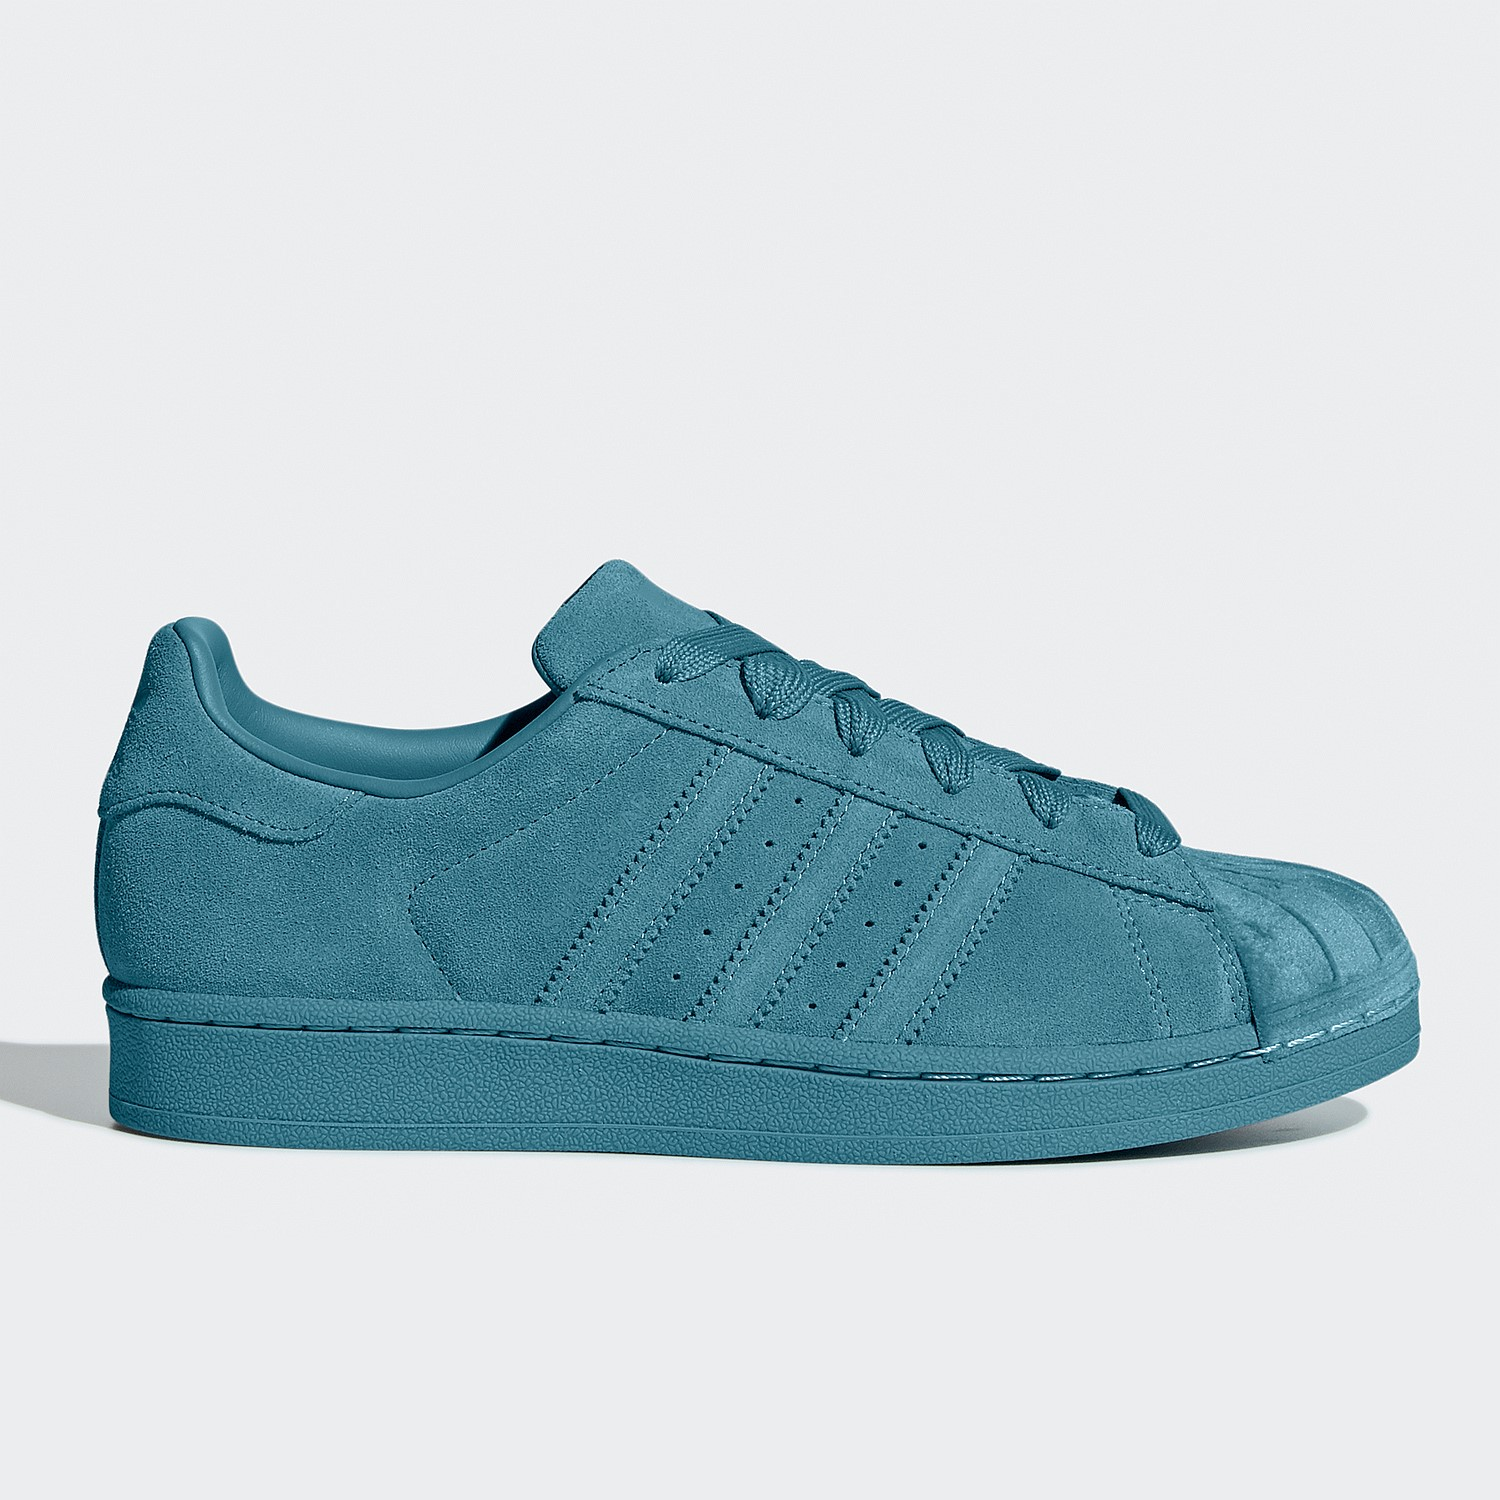 5c339eac438 Feelin' Blue - Superstar Womens